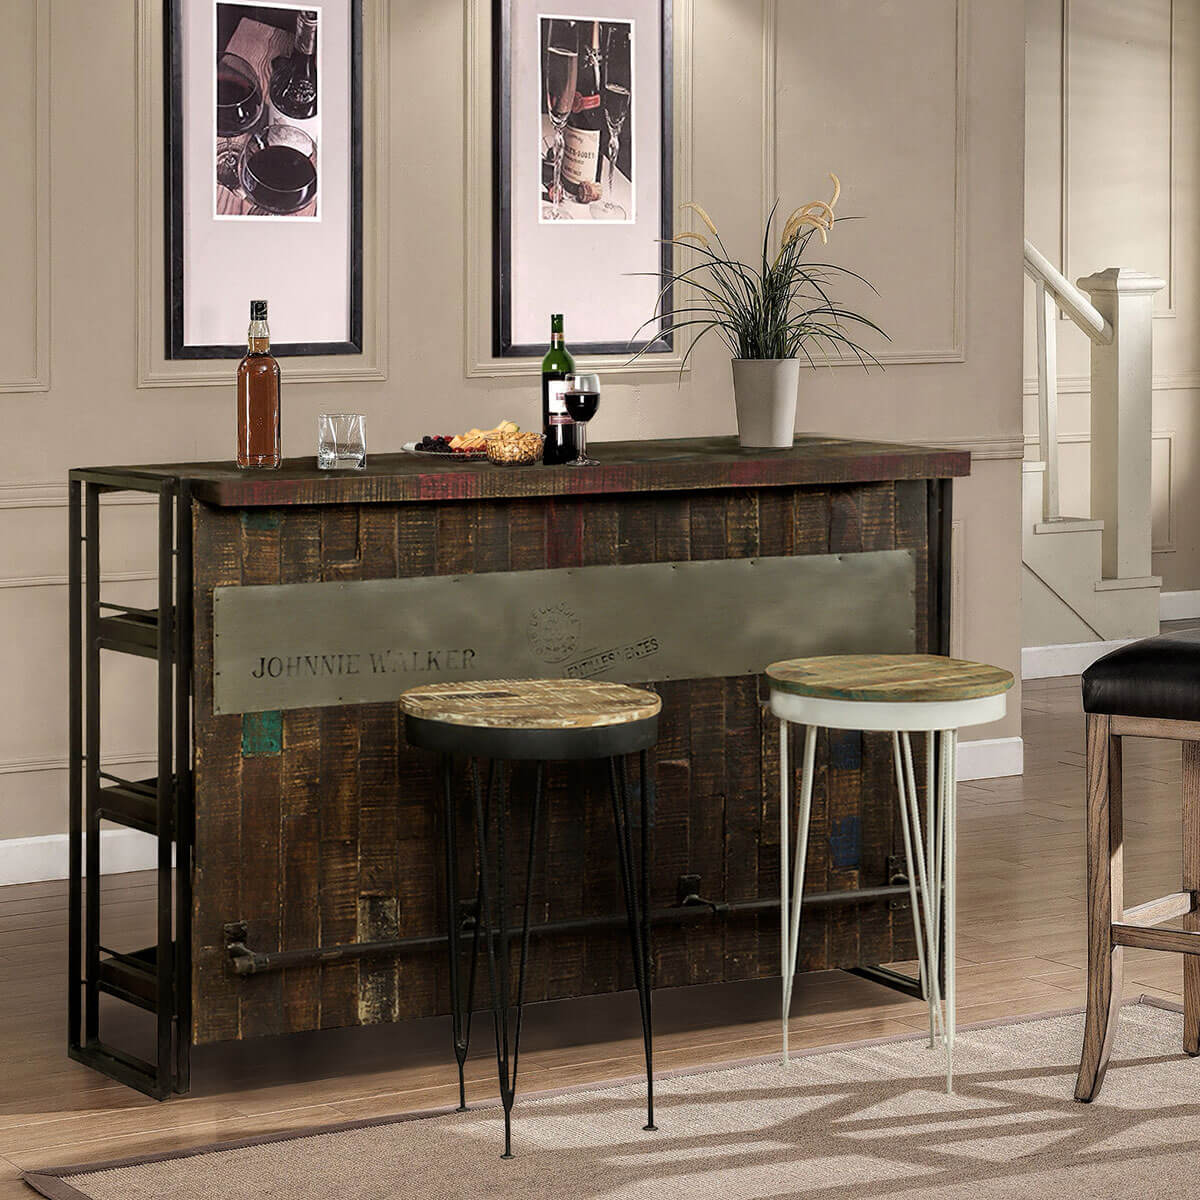 Gratis Modern Mango Wood Industrial Wine Bar Cabinet with 2 Stools